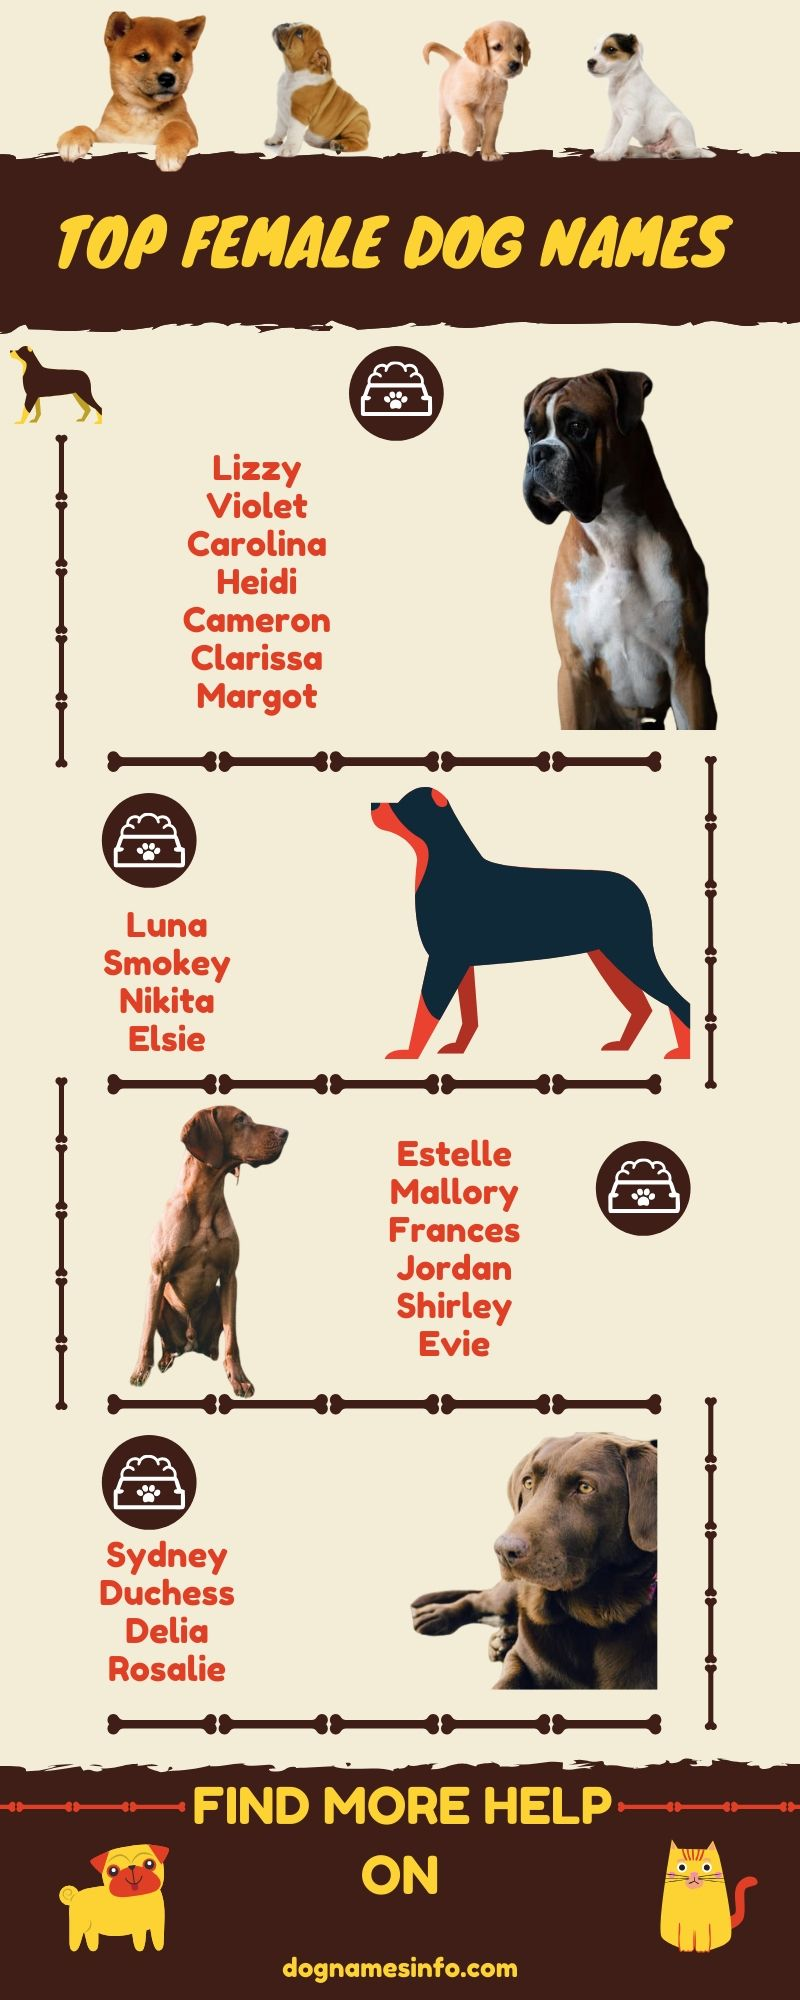 Unique Female Dog Names 2020 250 Popular Girl Puppy Names Ideas In 2020 Unique Female Dog Names Dog Names